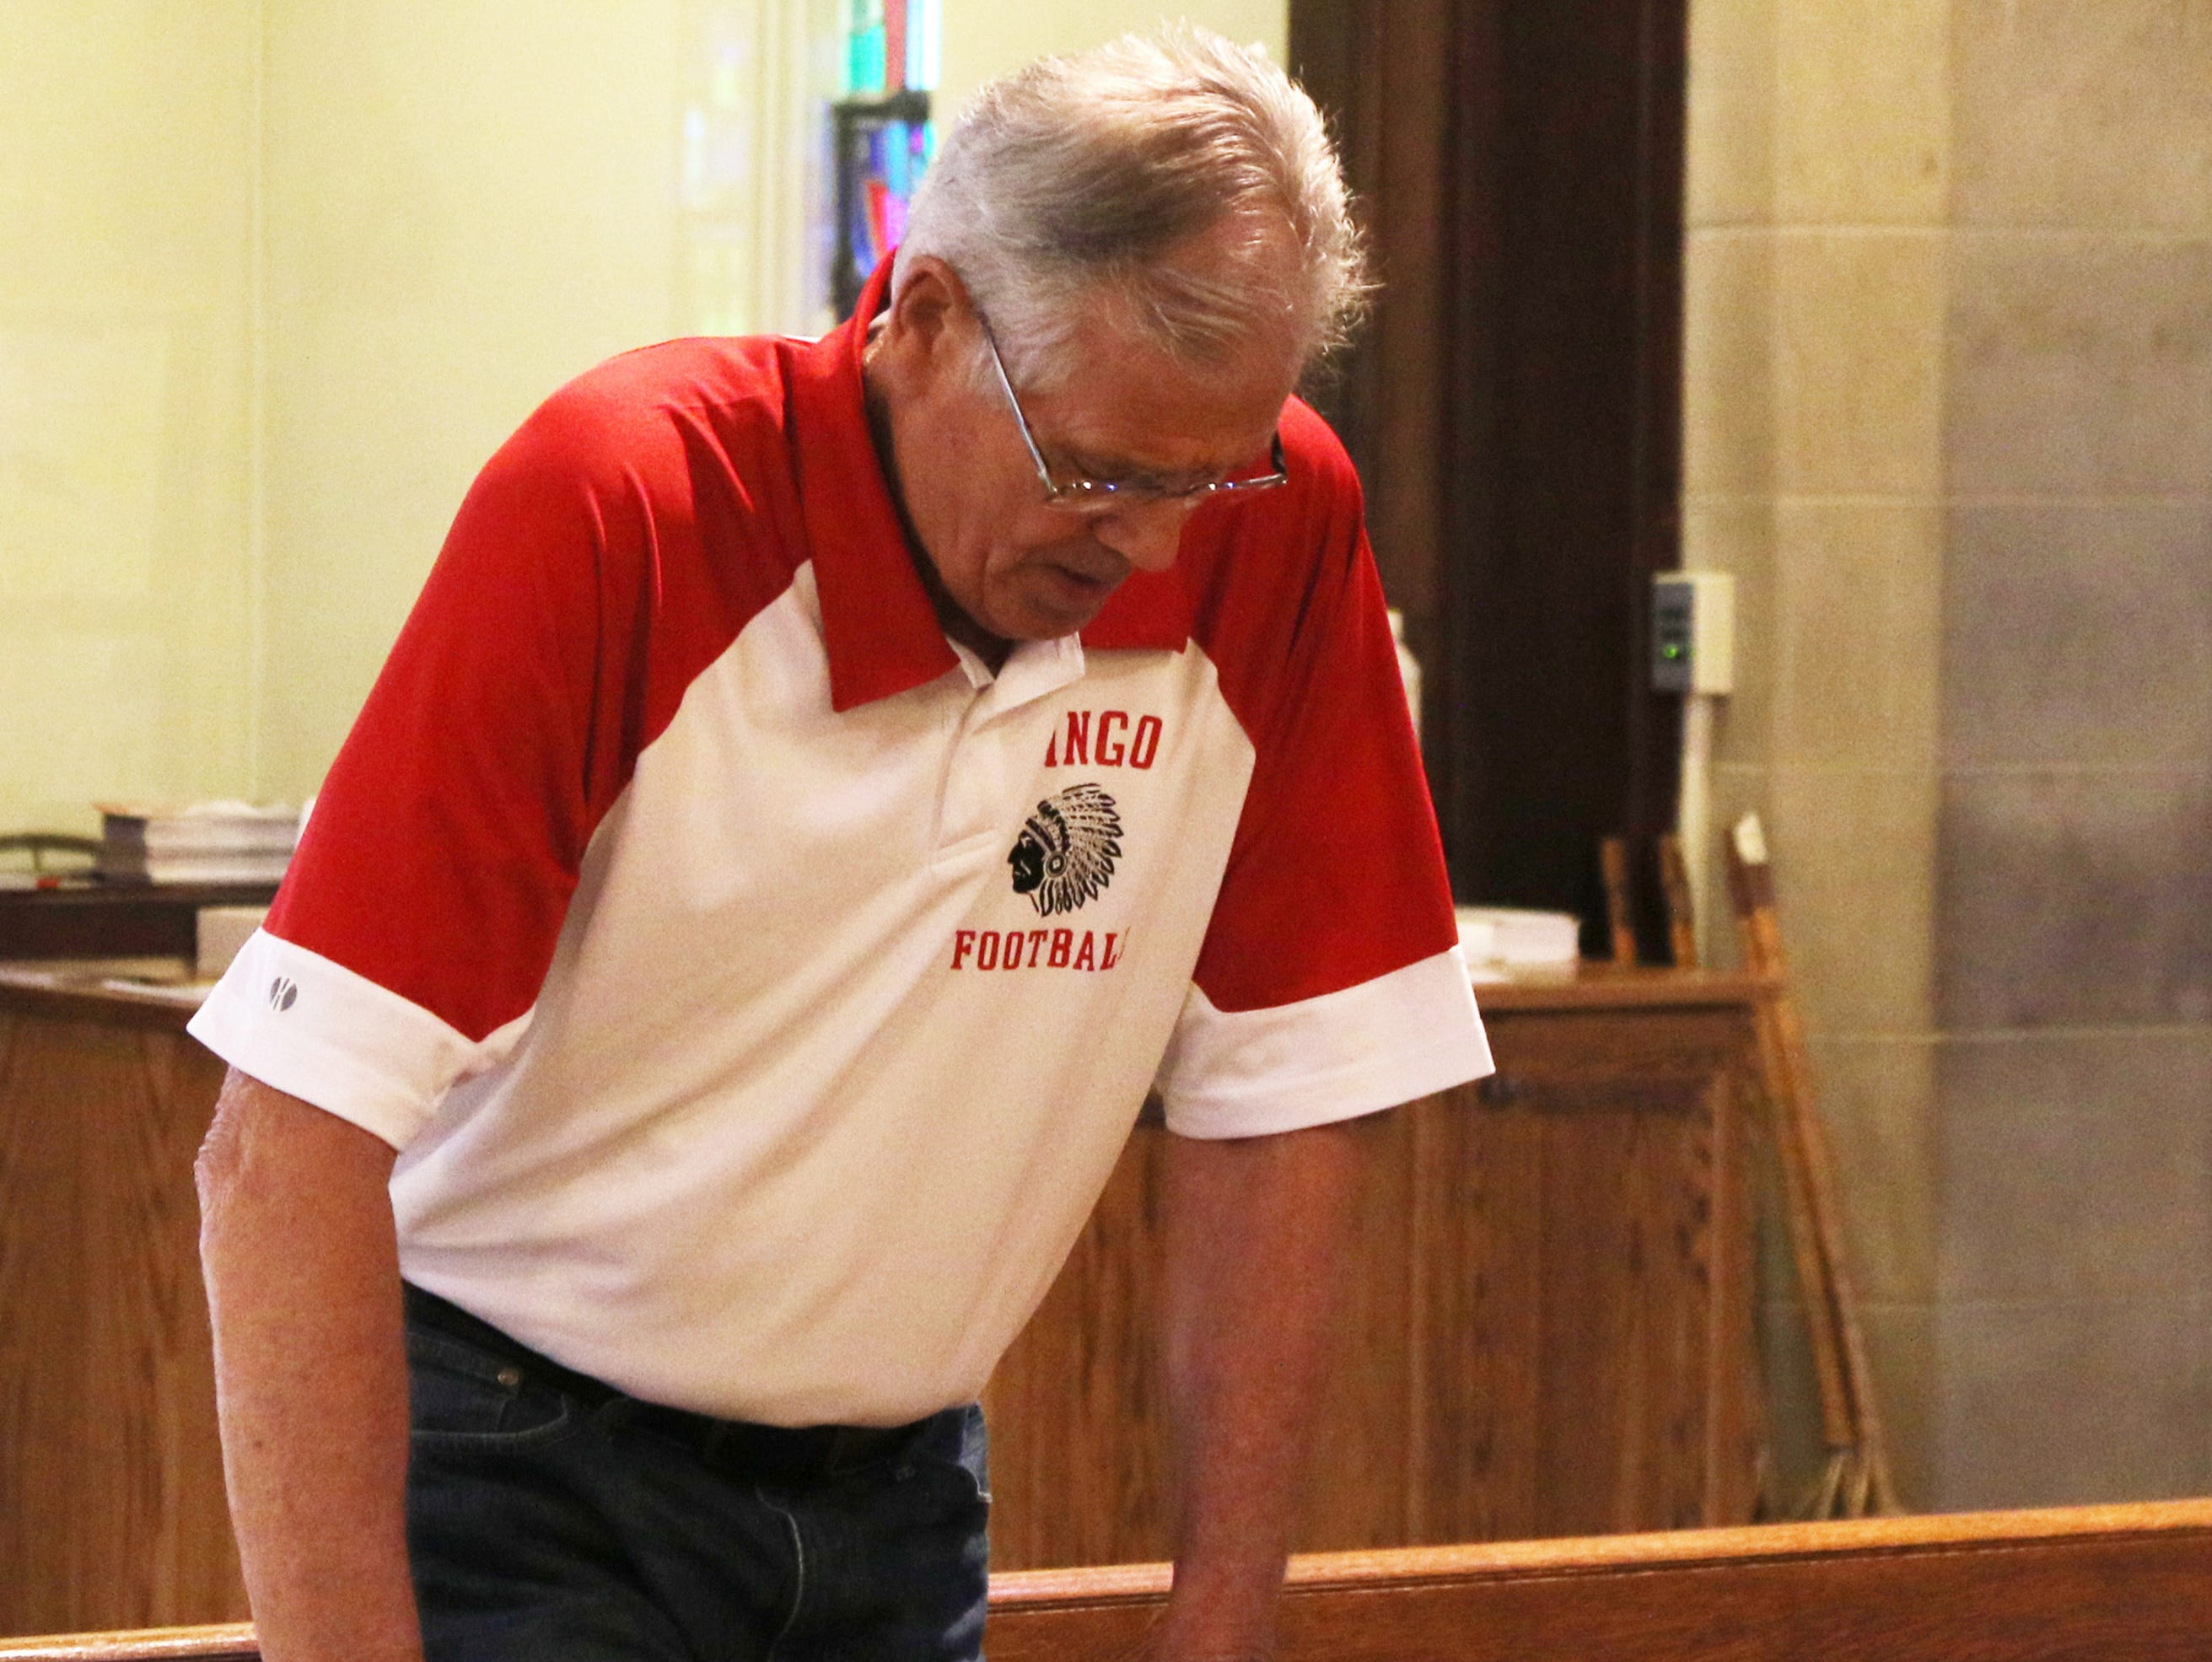 Mike Herrick is the former football coach from MIngo High School that closed in 1993. Herrick is seen hearing praying as he attends mass almost every morning at St. Agnes Church in Mingo Junction.